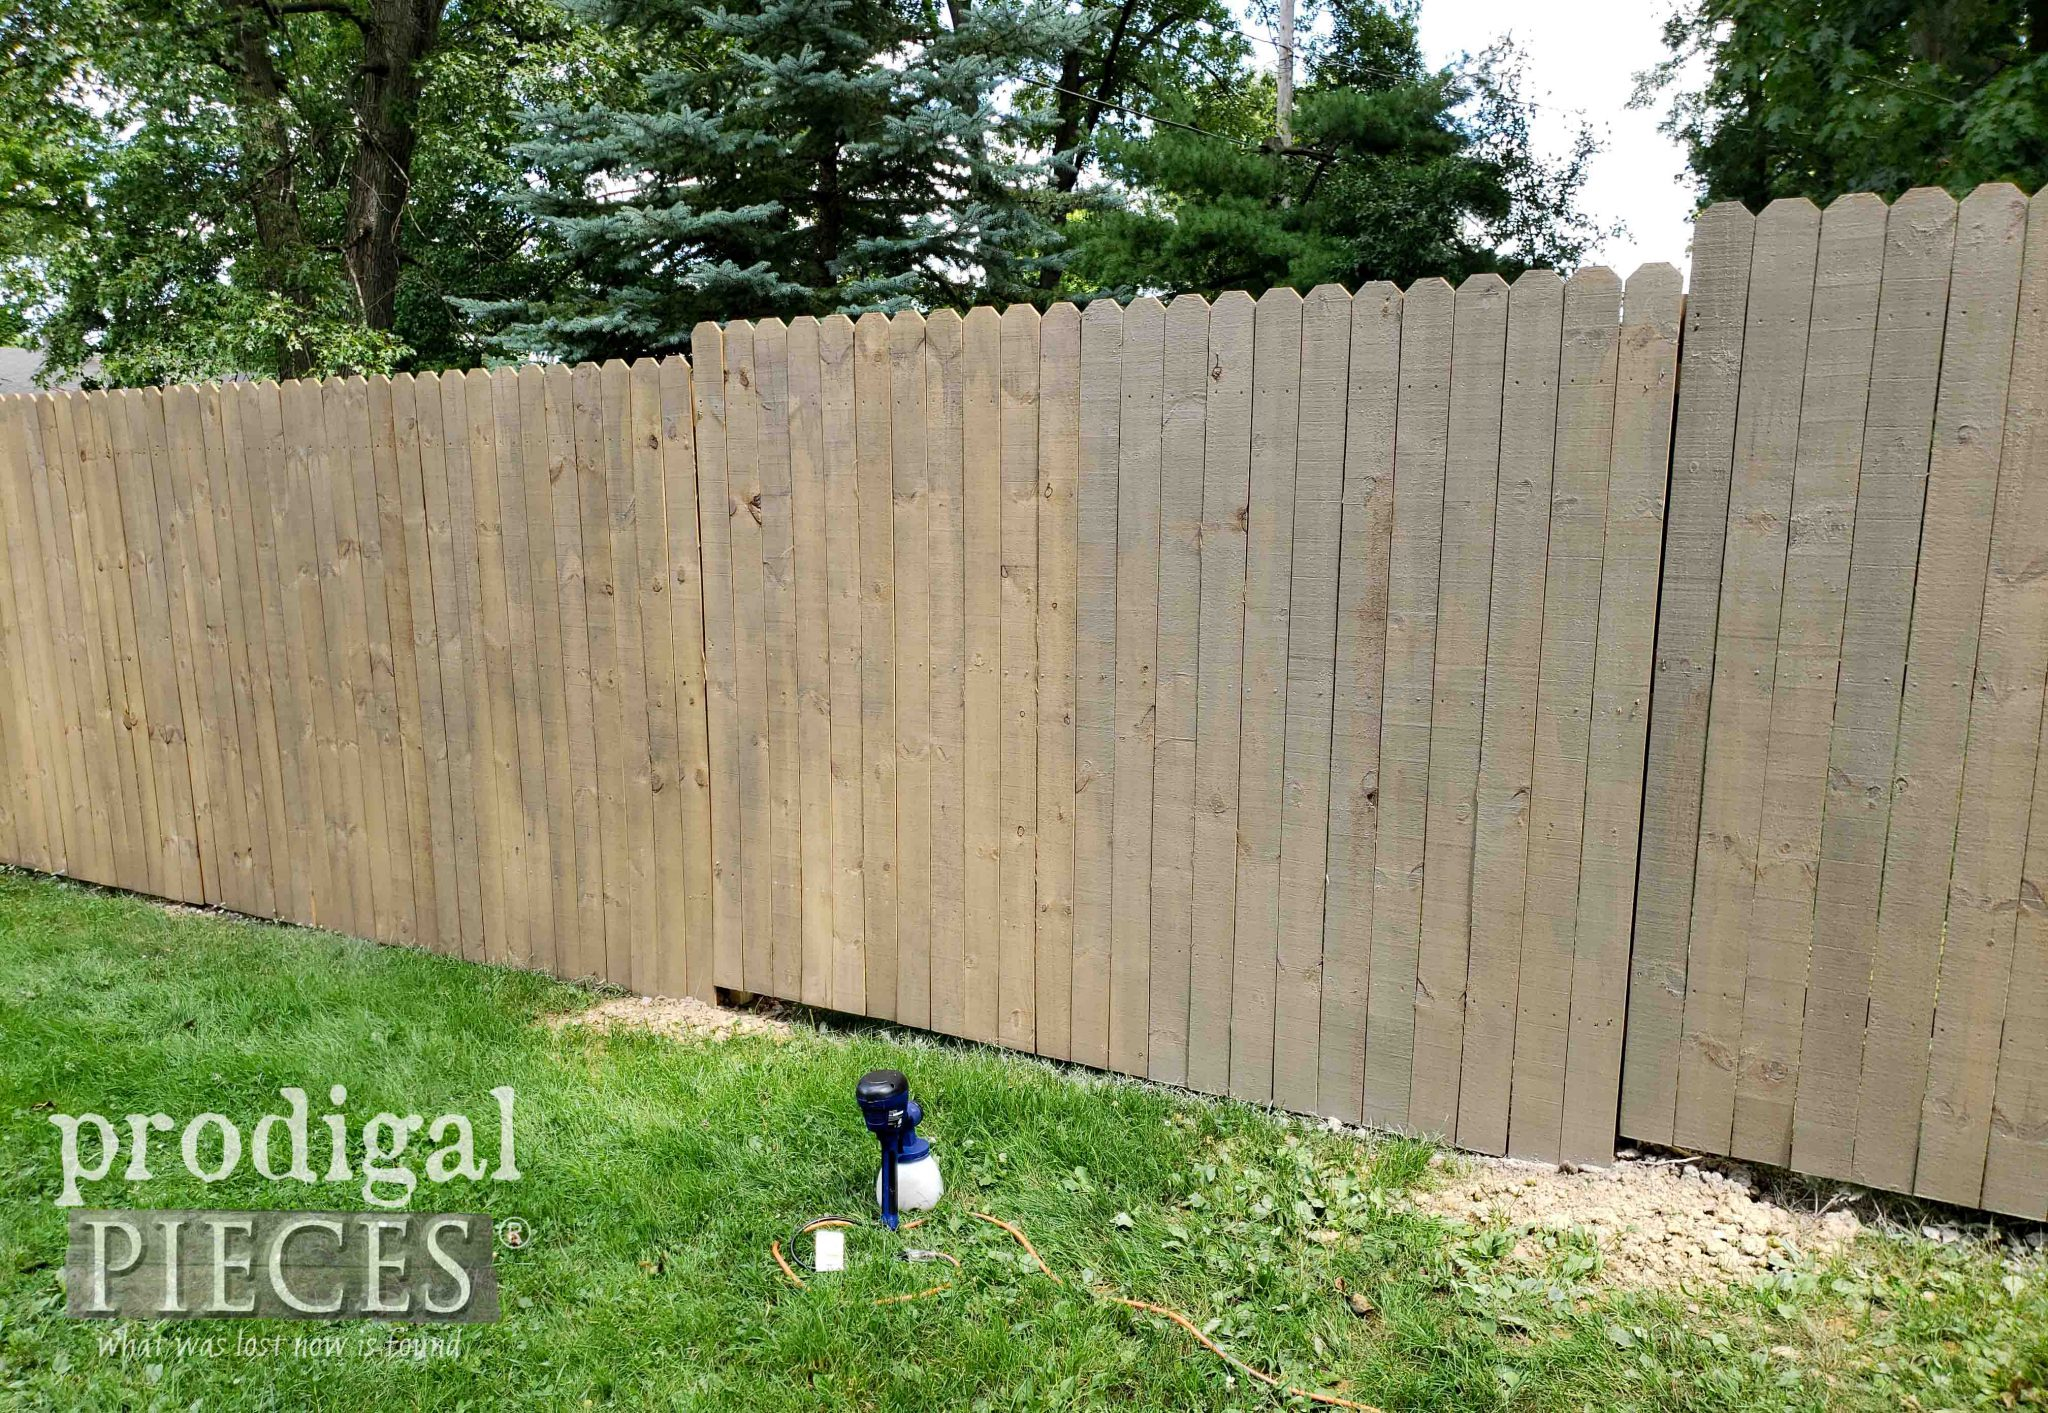 Second Coat of Stain | How to Stain a Fence the Fast & Easy Way by Larissa of Prodigal Pieces | prodigalpieces.com #prodigalpieces #diy #tools #homeimprovement #home #homedecor #outdoor